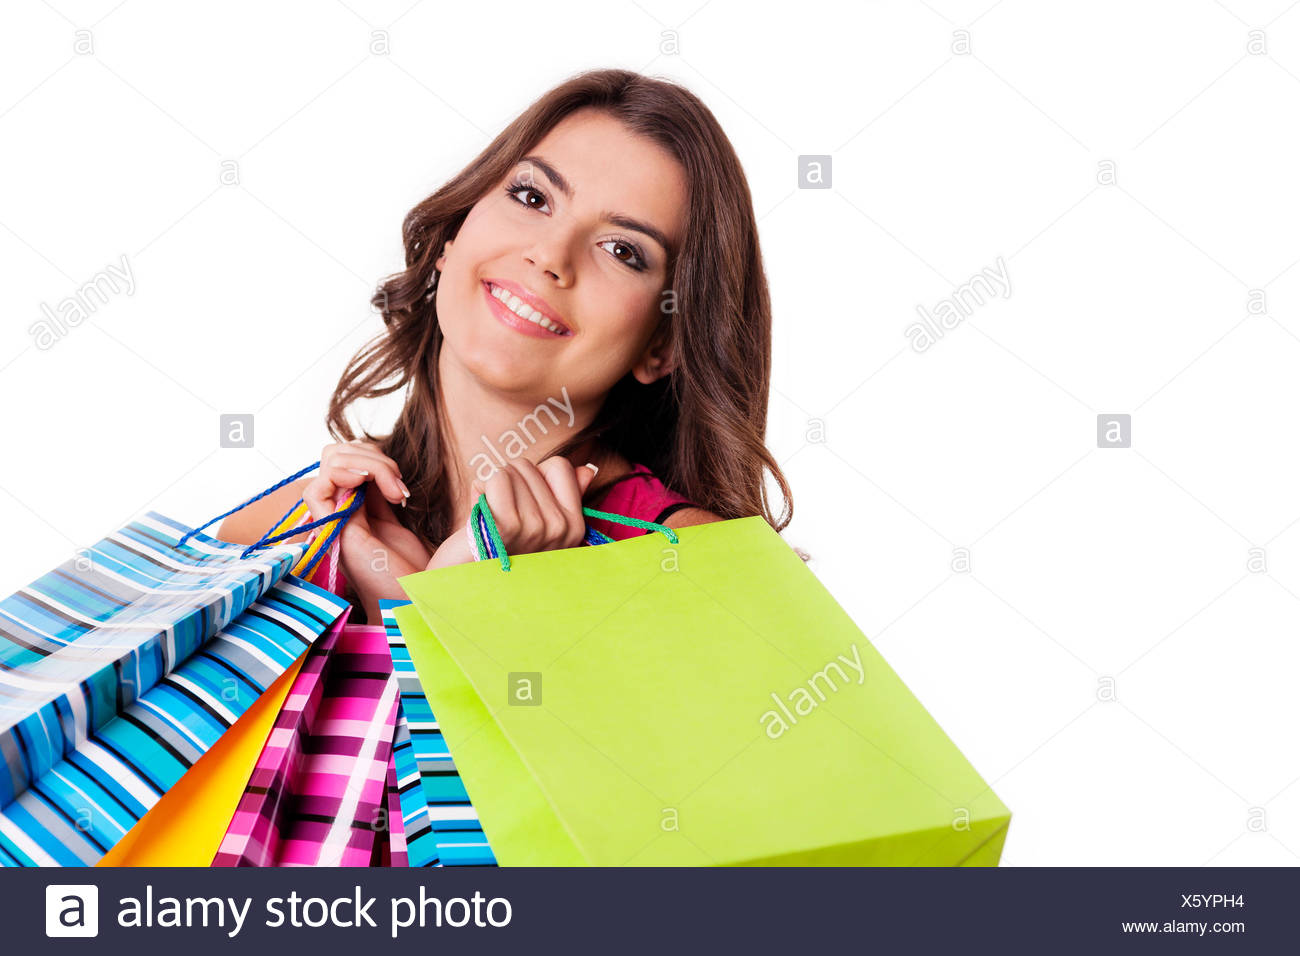 Brunette woman with multi colored shopping bags, Debica, Poland - Stock Image